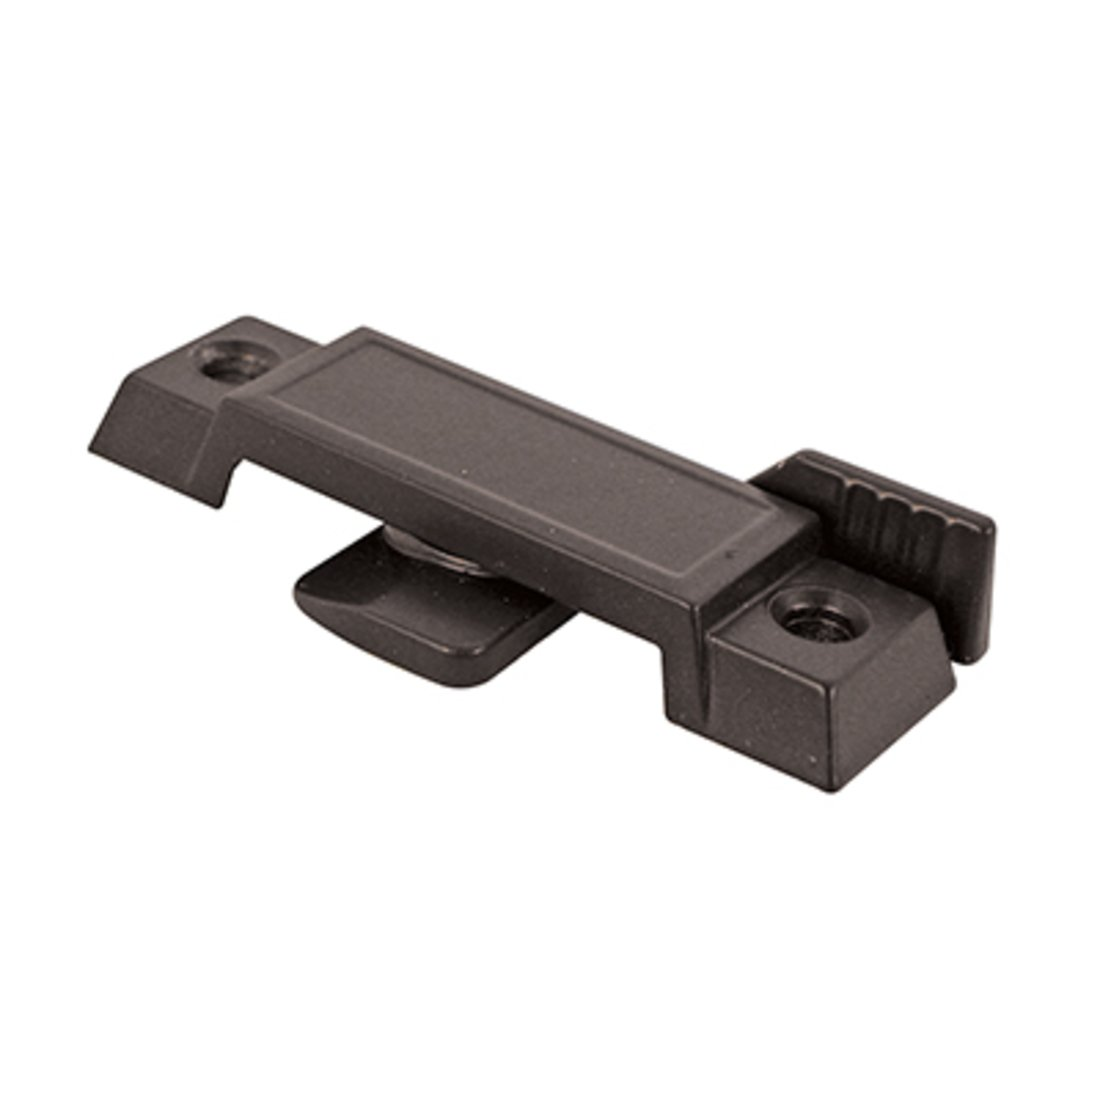 C.R. LAURENCE F2596B CRL Bronze Sliding Window Lock With 2-1/4'' Screw Hole and 3/8'' Latch Projection - Bulk 20 Pack